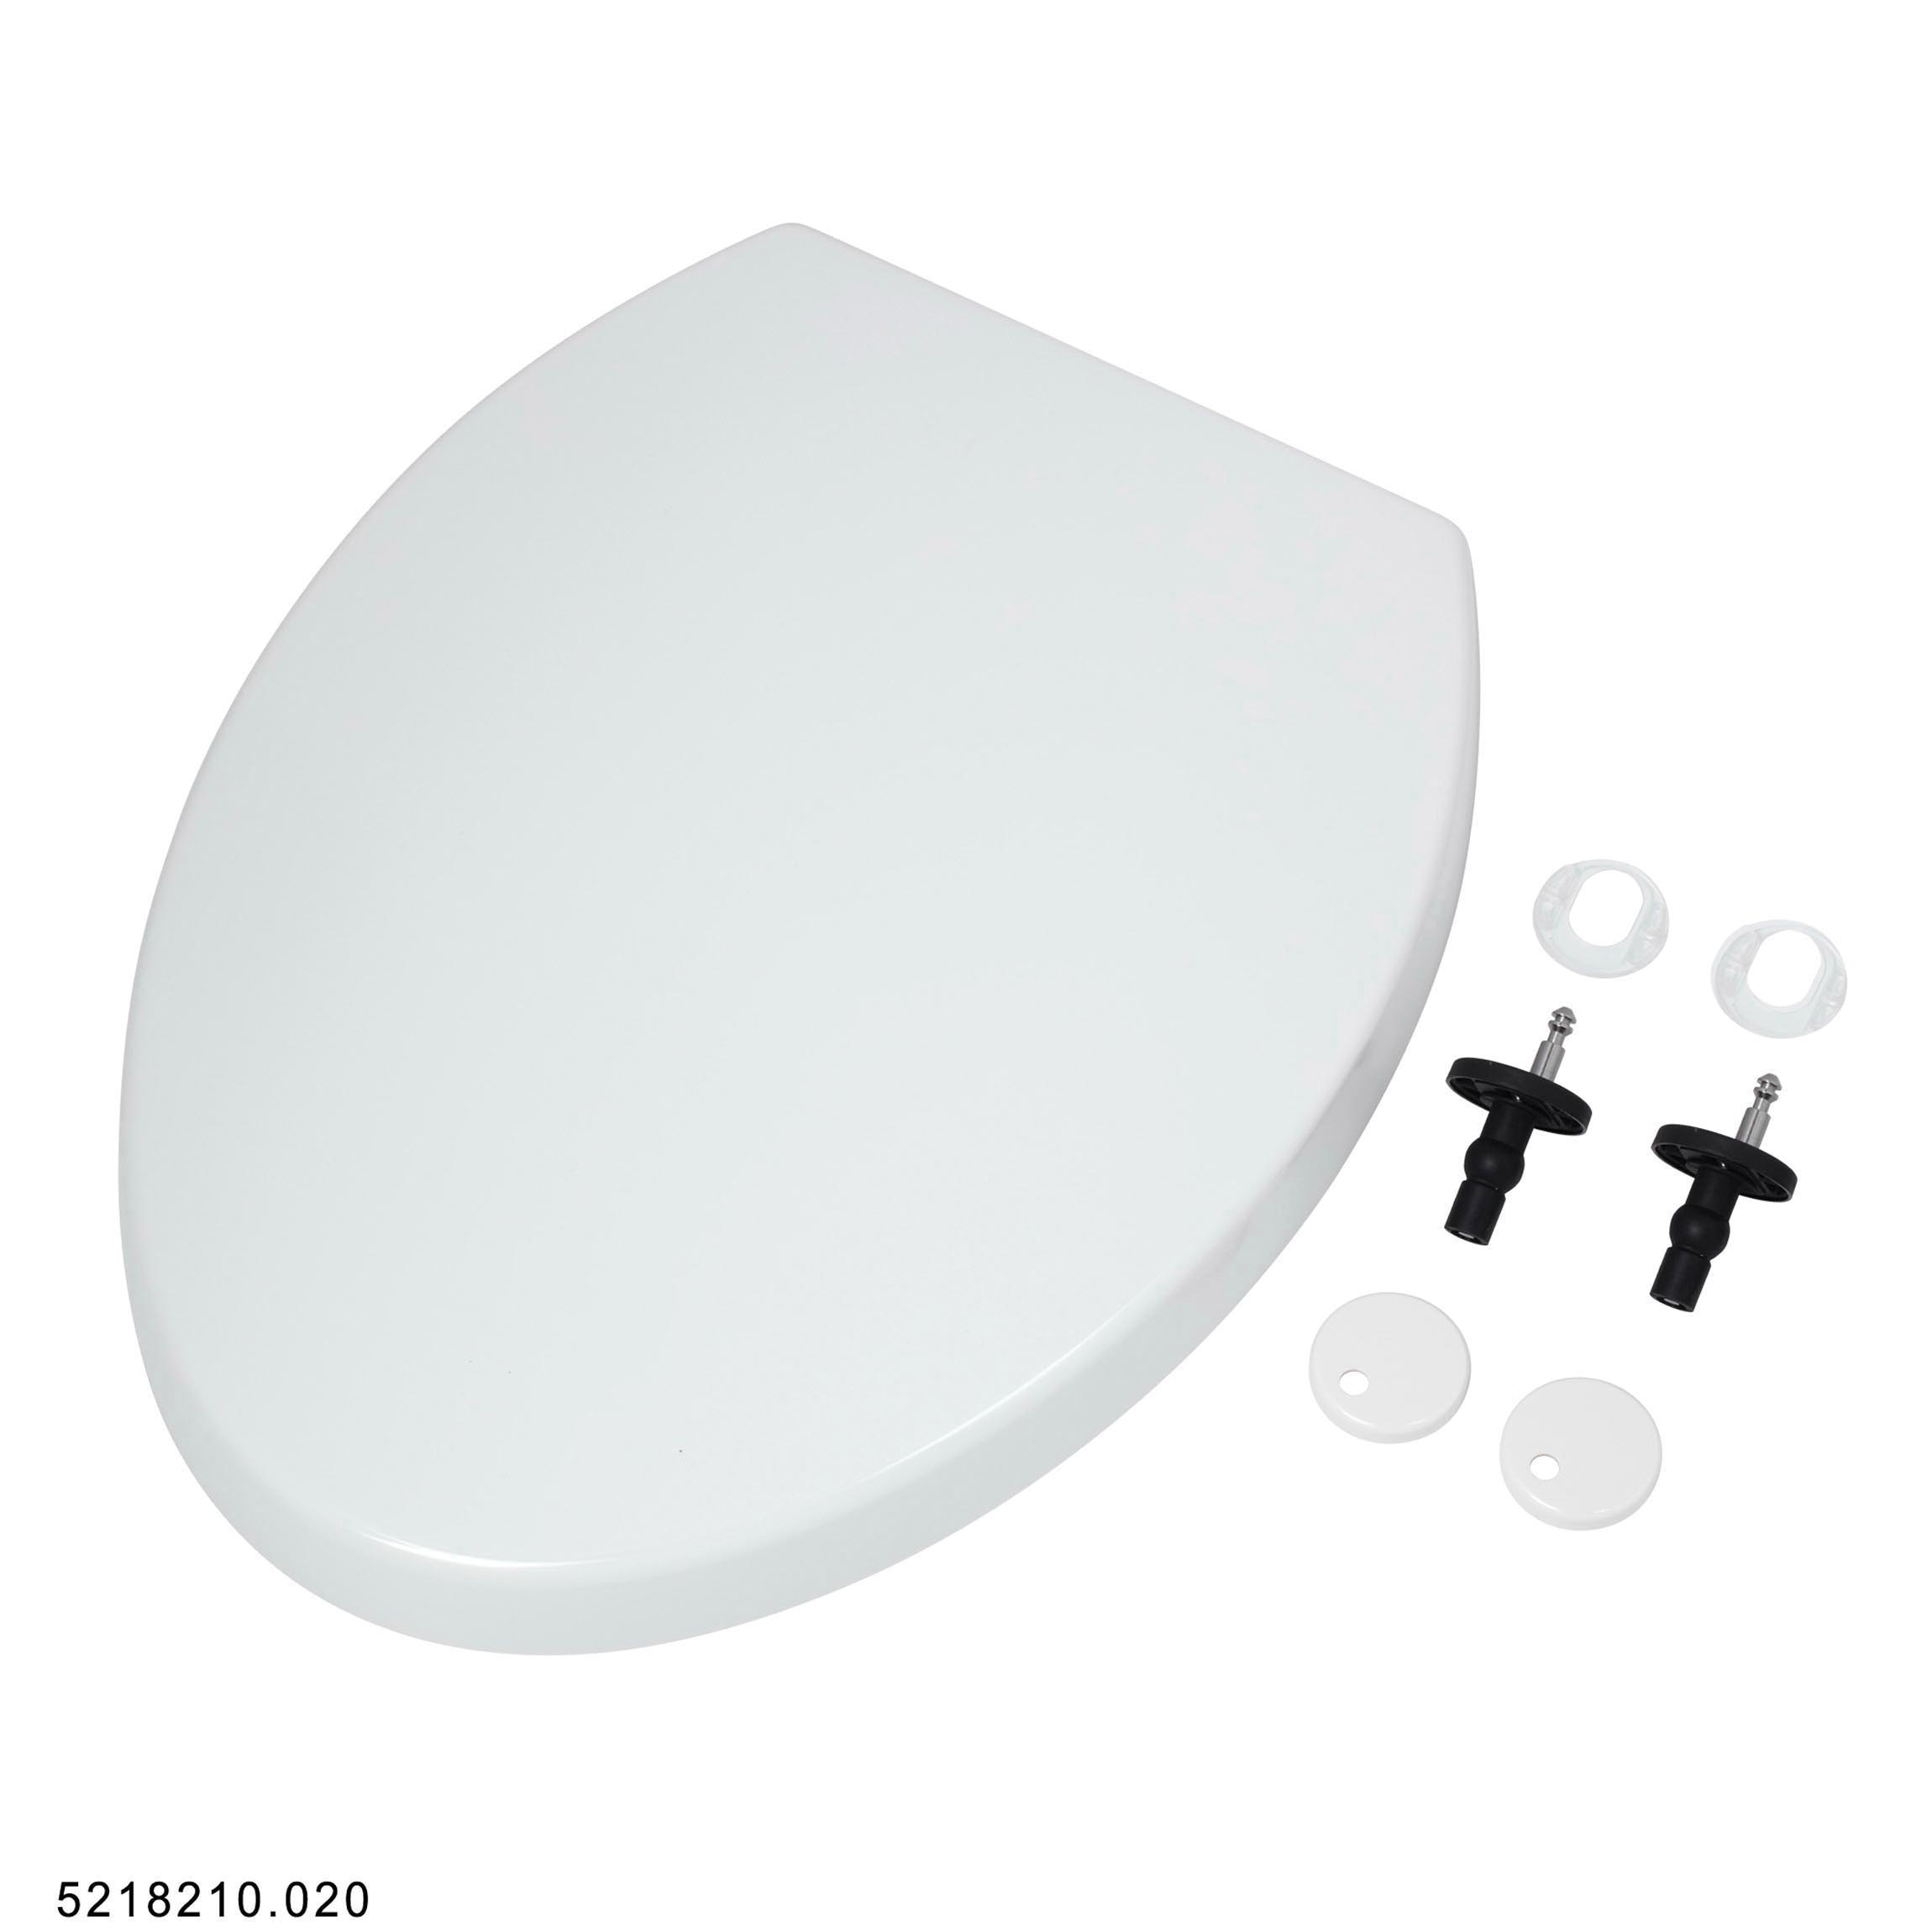 American Standard 5218210.020 Easy Lift-Off Luxury Toilet Seat, Elongated Bowl, Closed Front, Plastic, White, Import